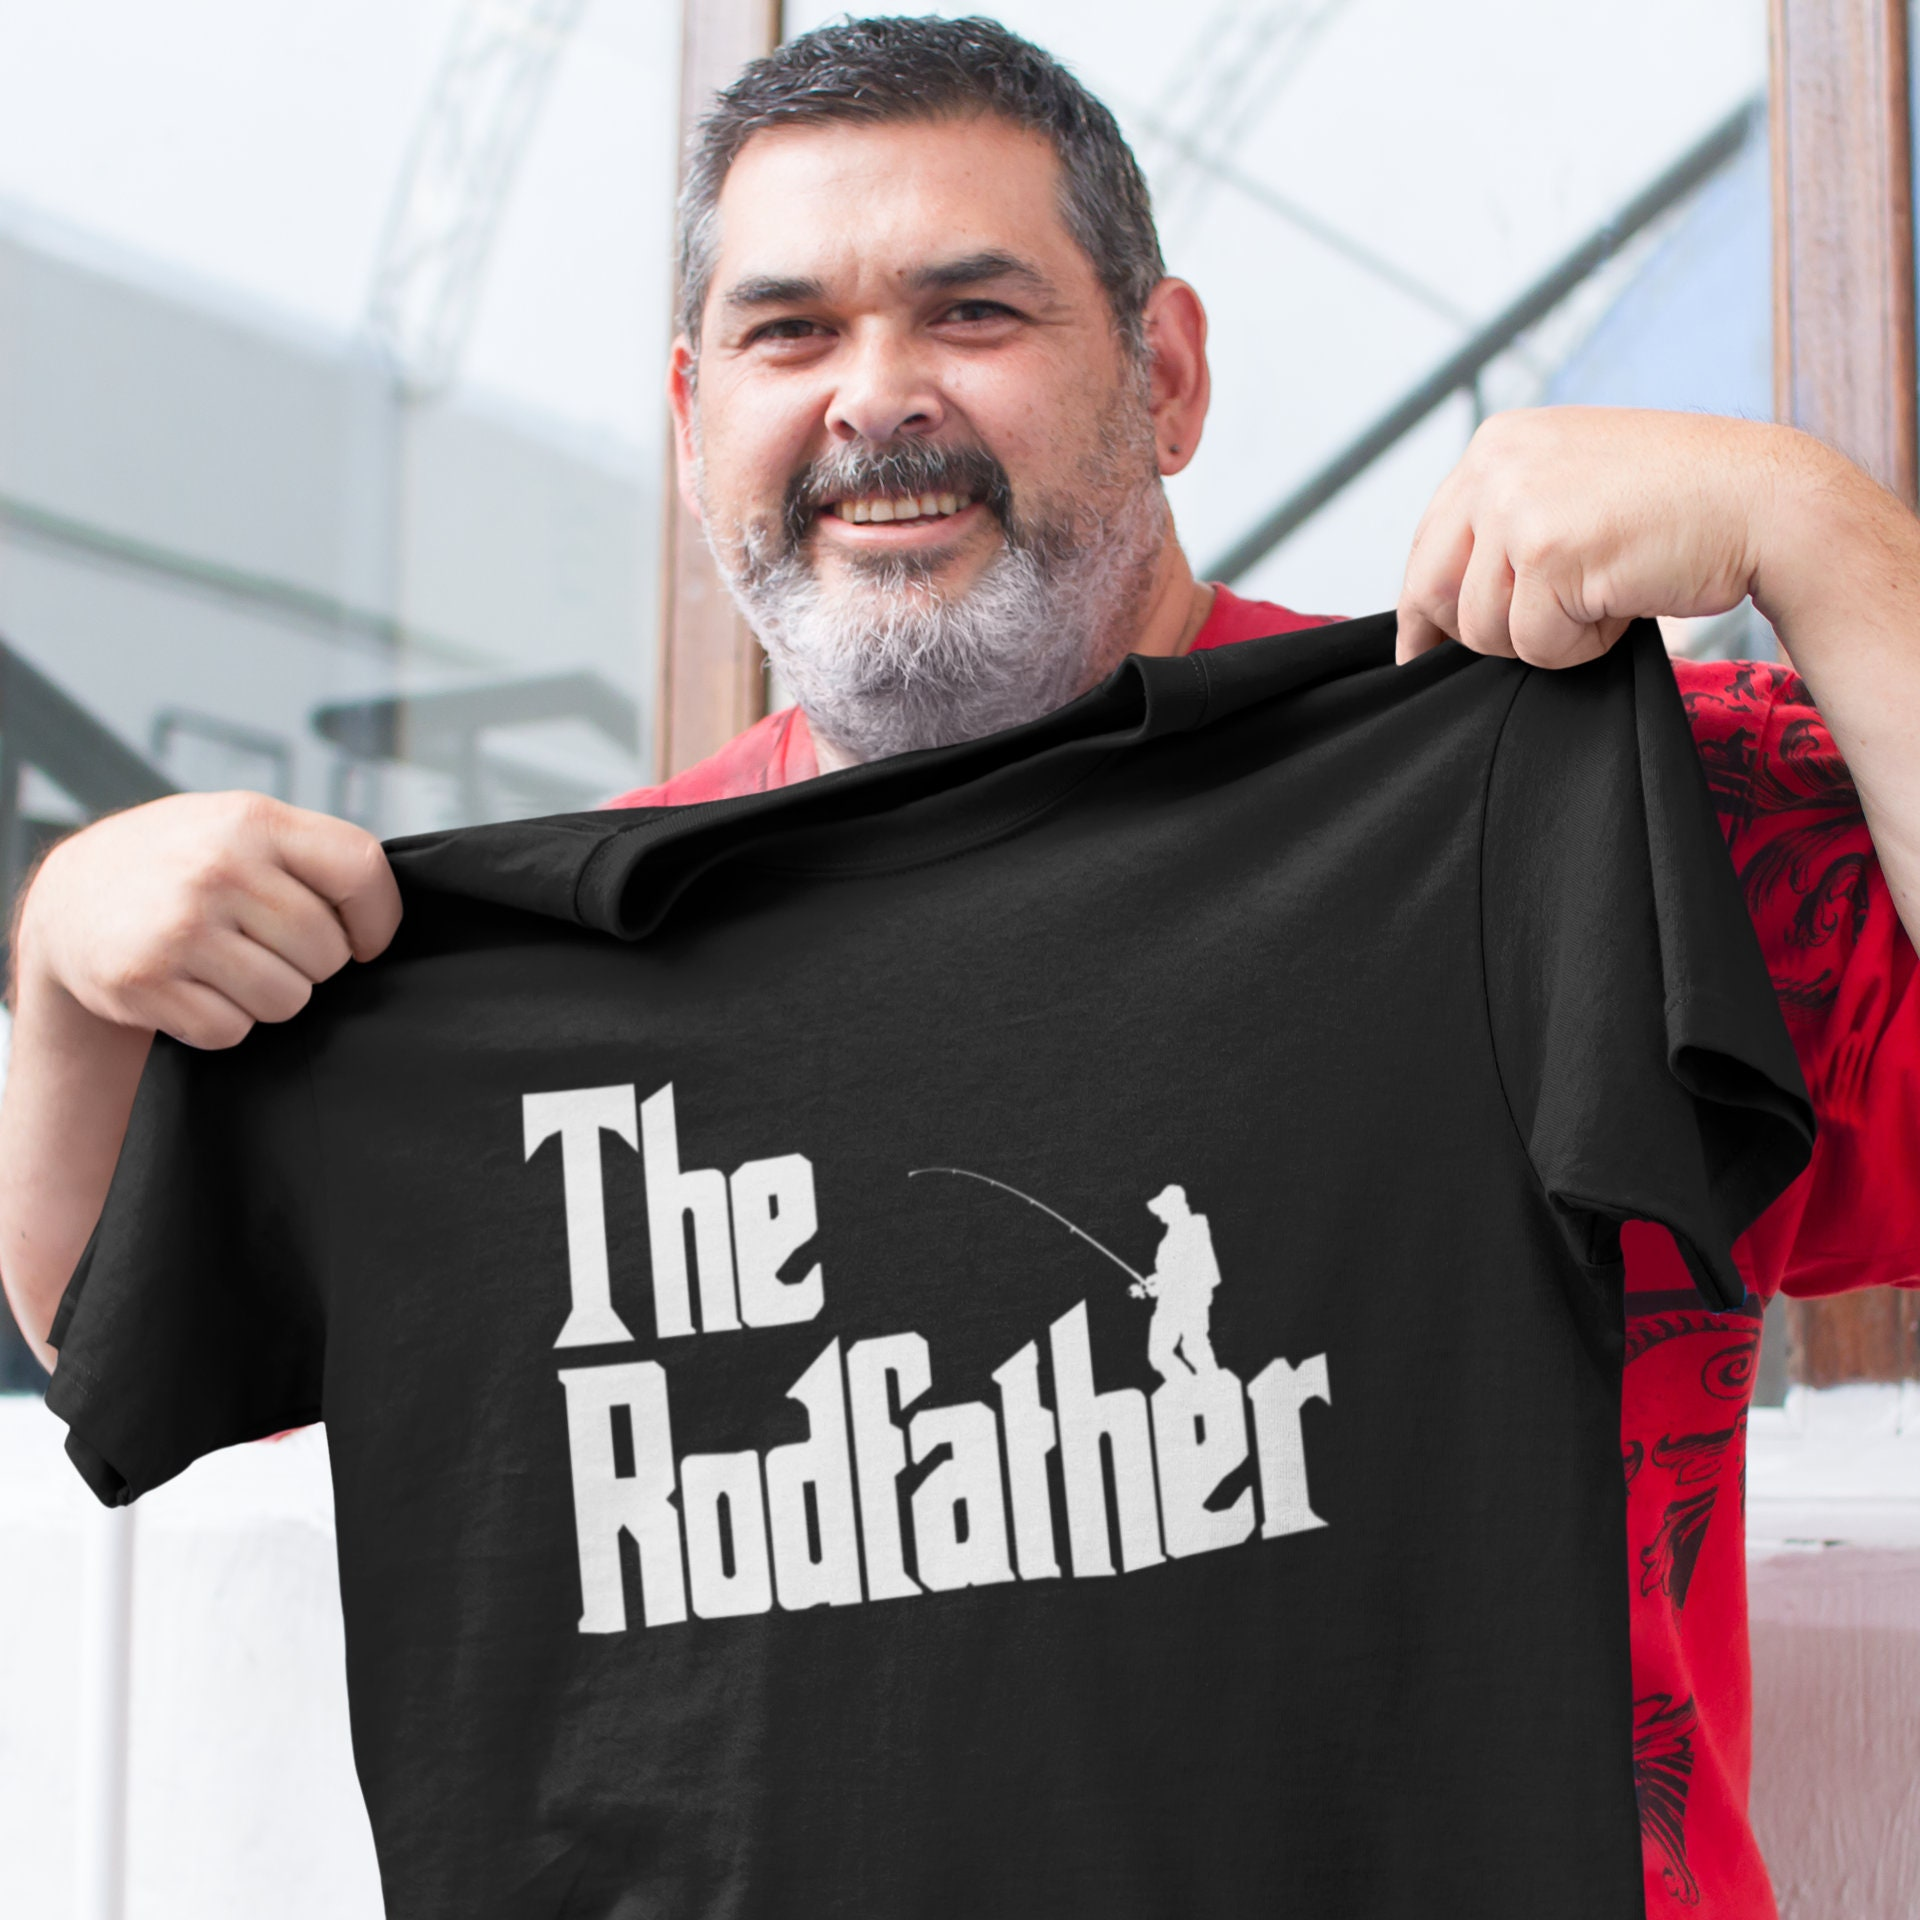 2321af36ed The Rodfather Shirt - Fishing T-Shirt - Funny Gift Dad - Present T Shirt -  Gift For Fisherman - Fathers Day - Fish Tee